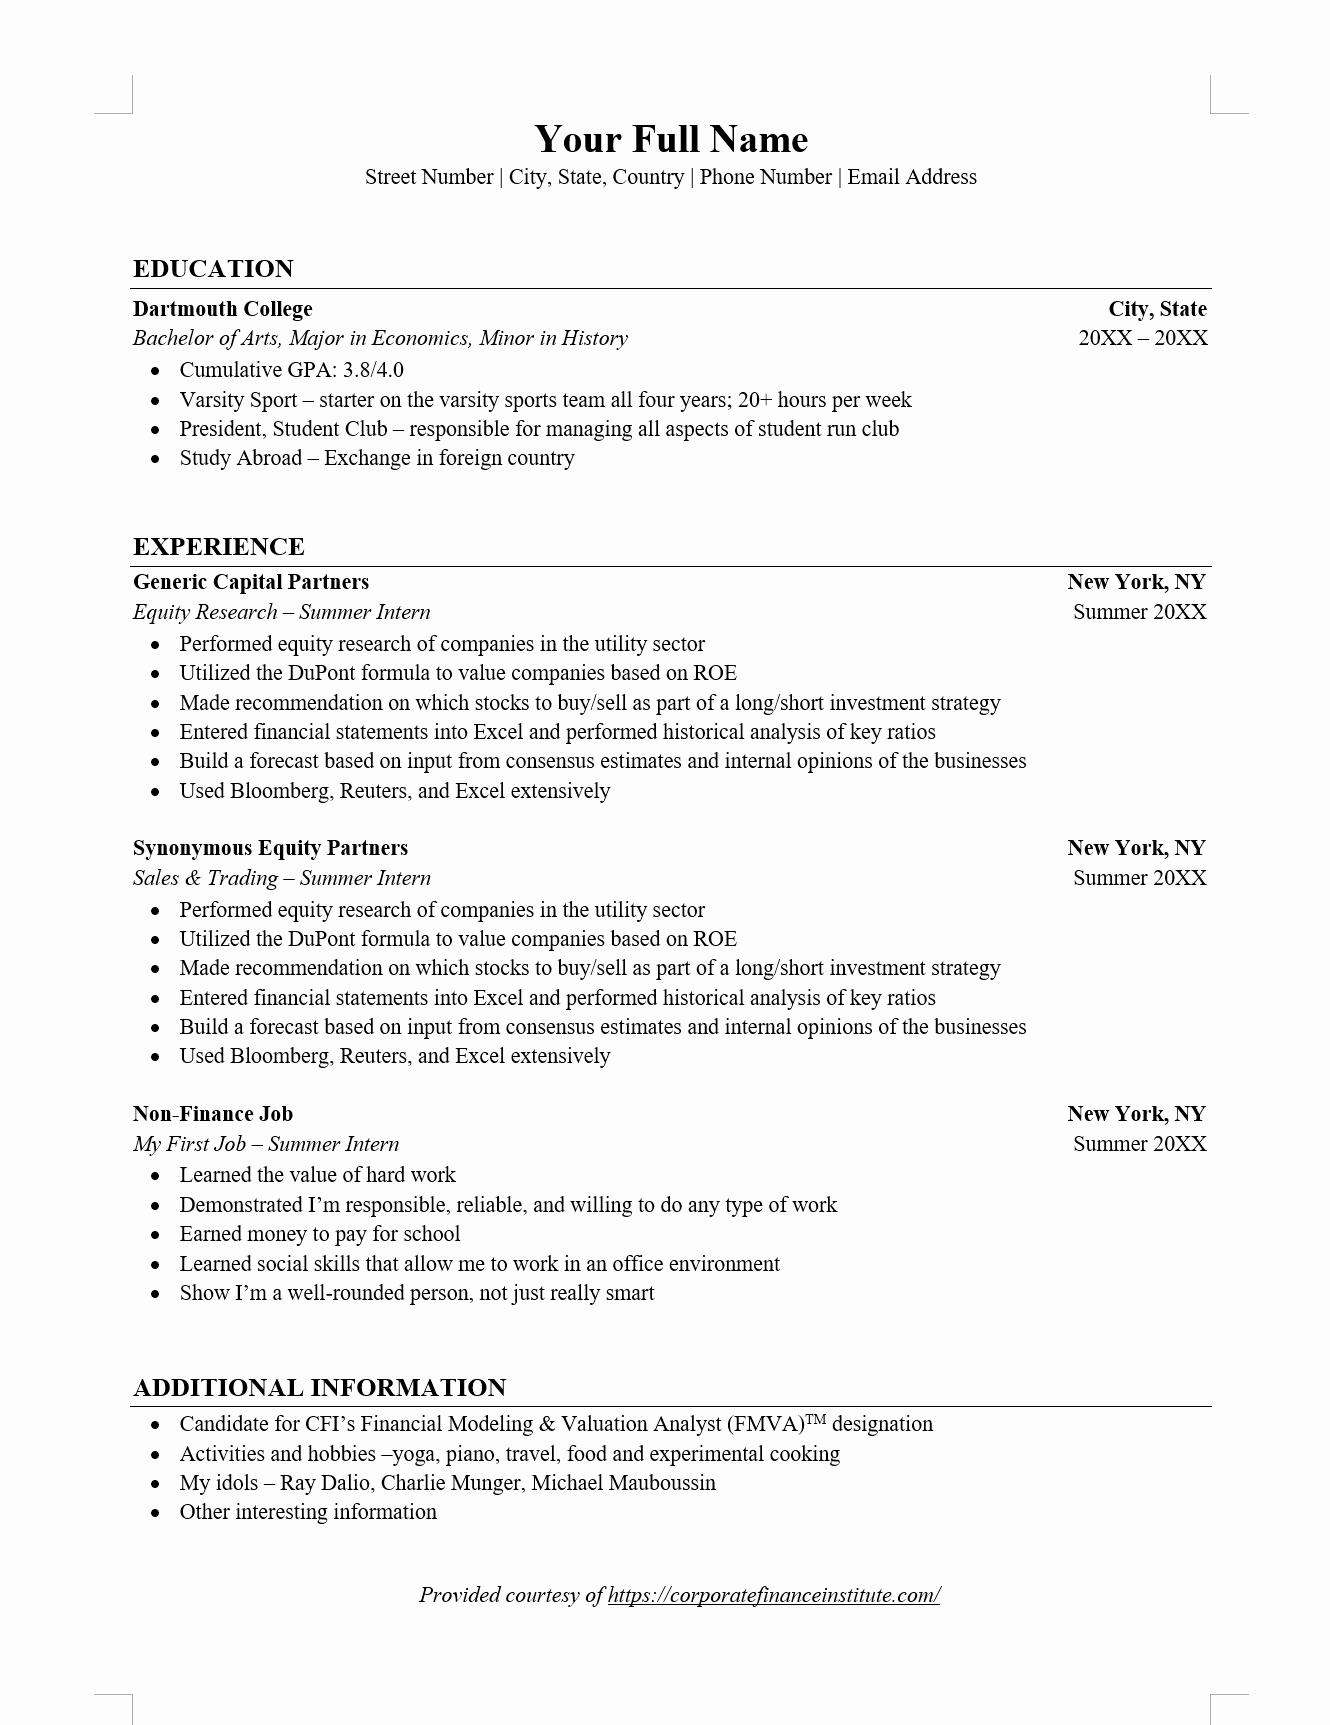 Finance Resume Template Word Unique Investment Banking Ib Resume Word Template Download Free Template